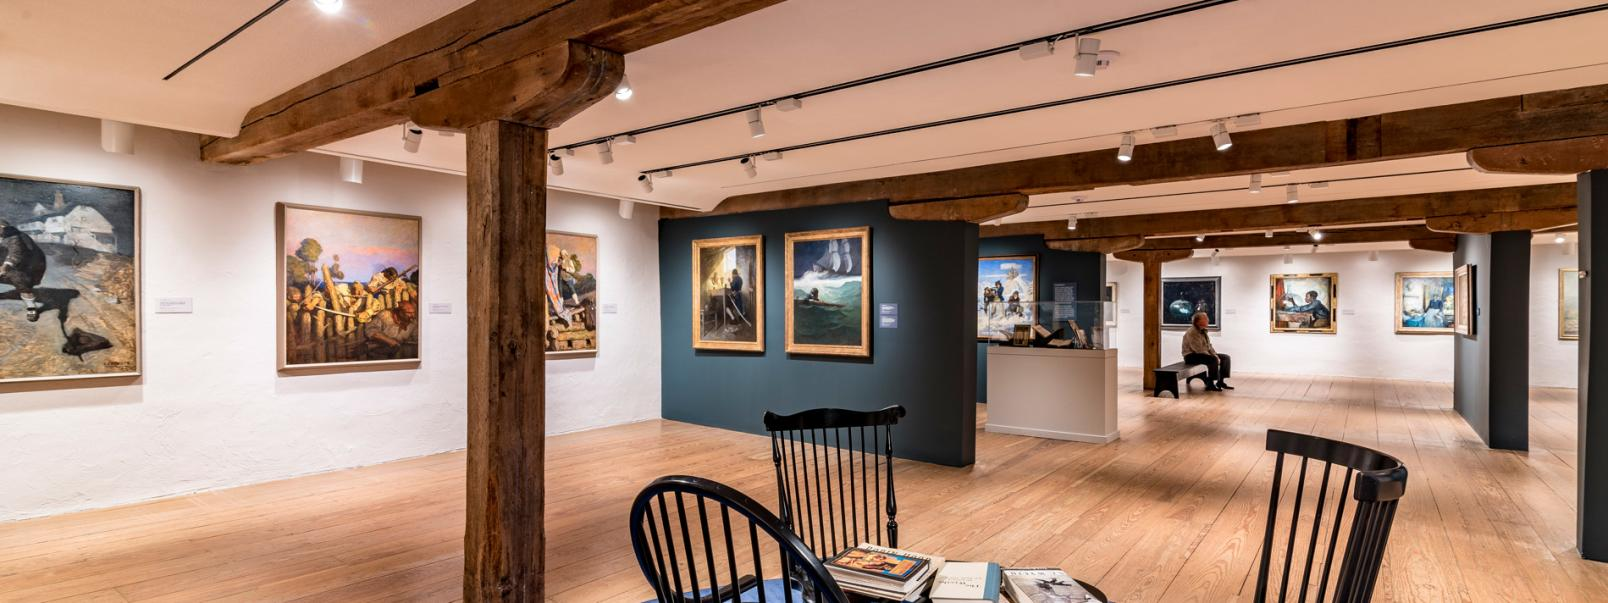 Brandywine River Museum of Art: A Look Ahead for 2017